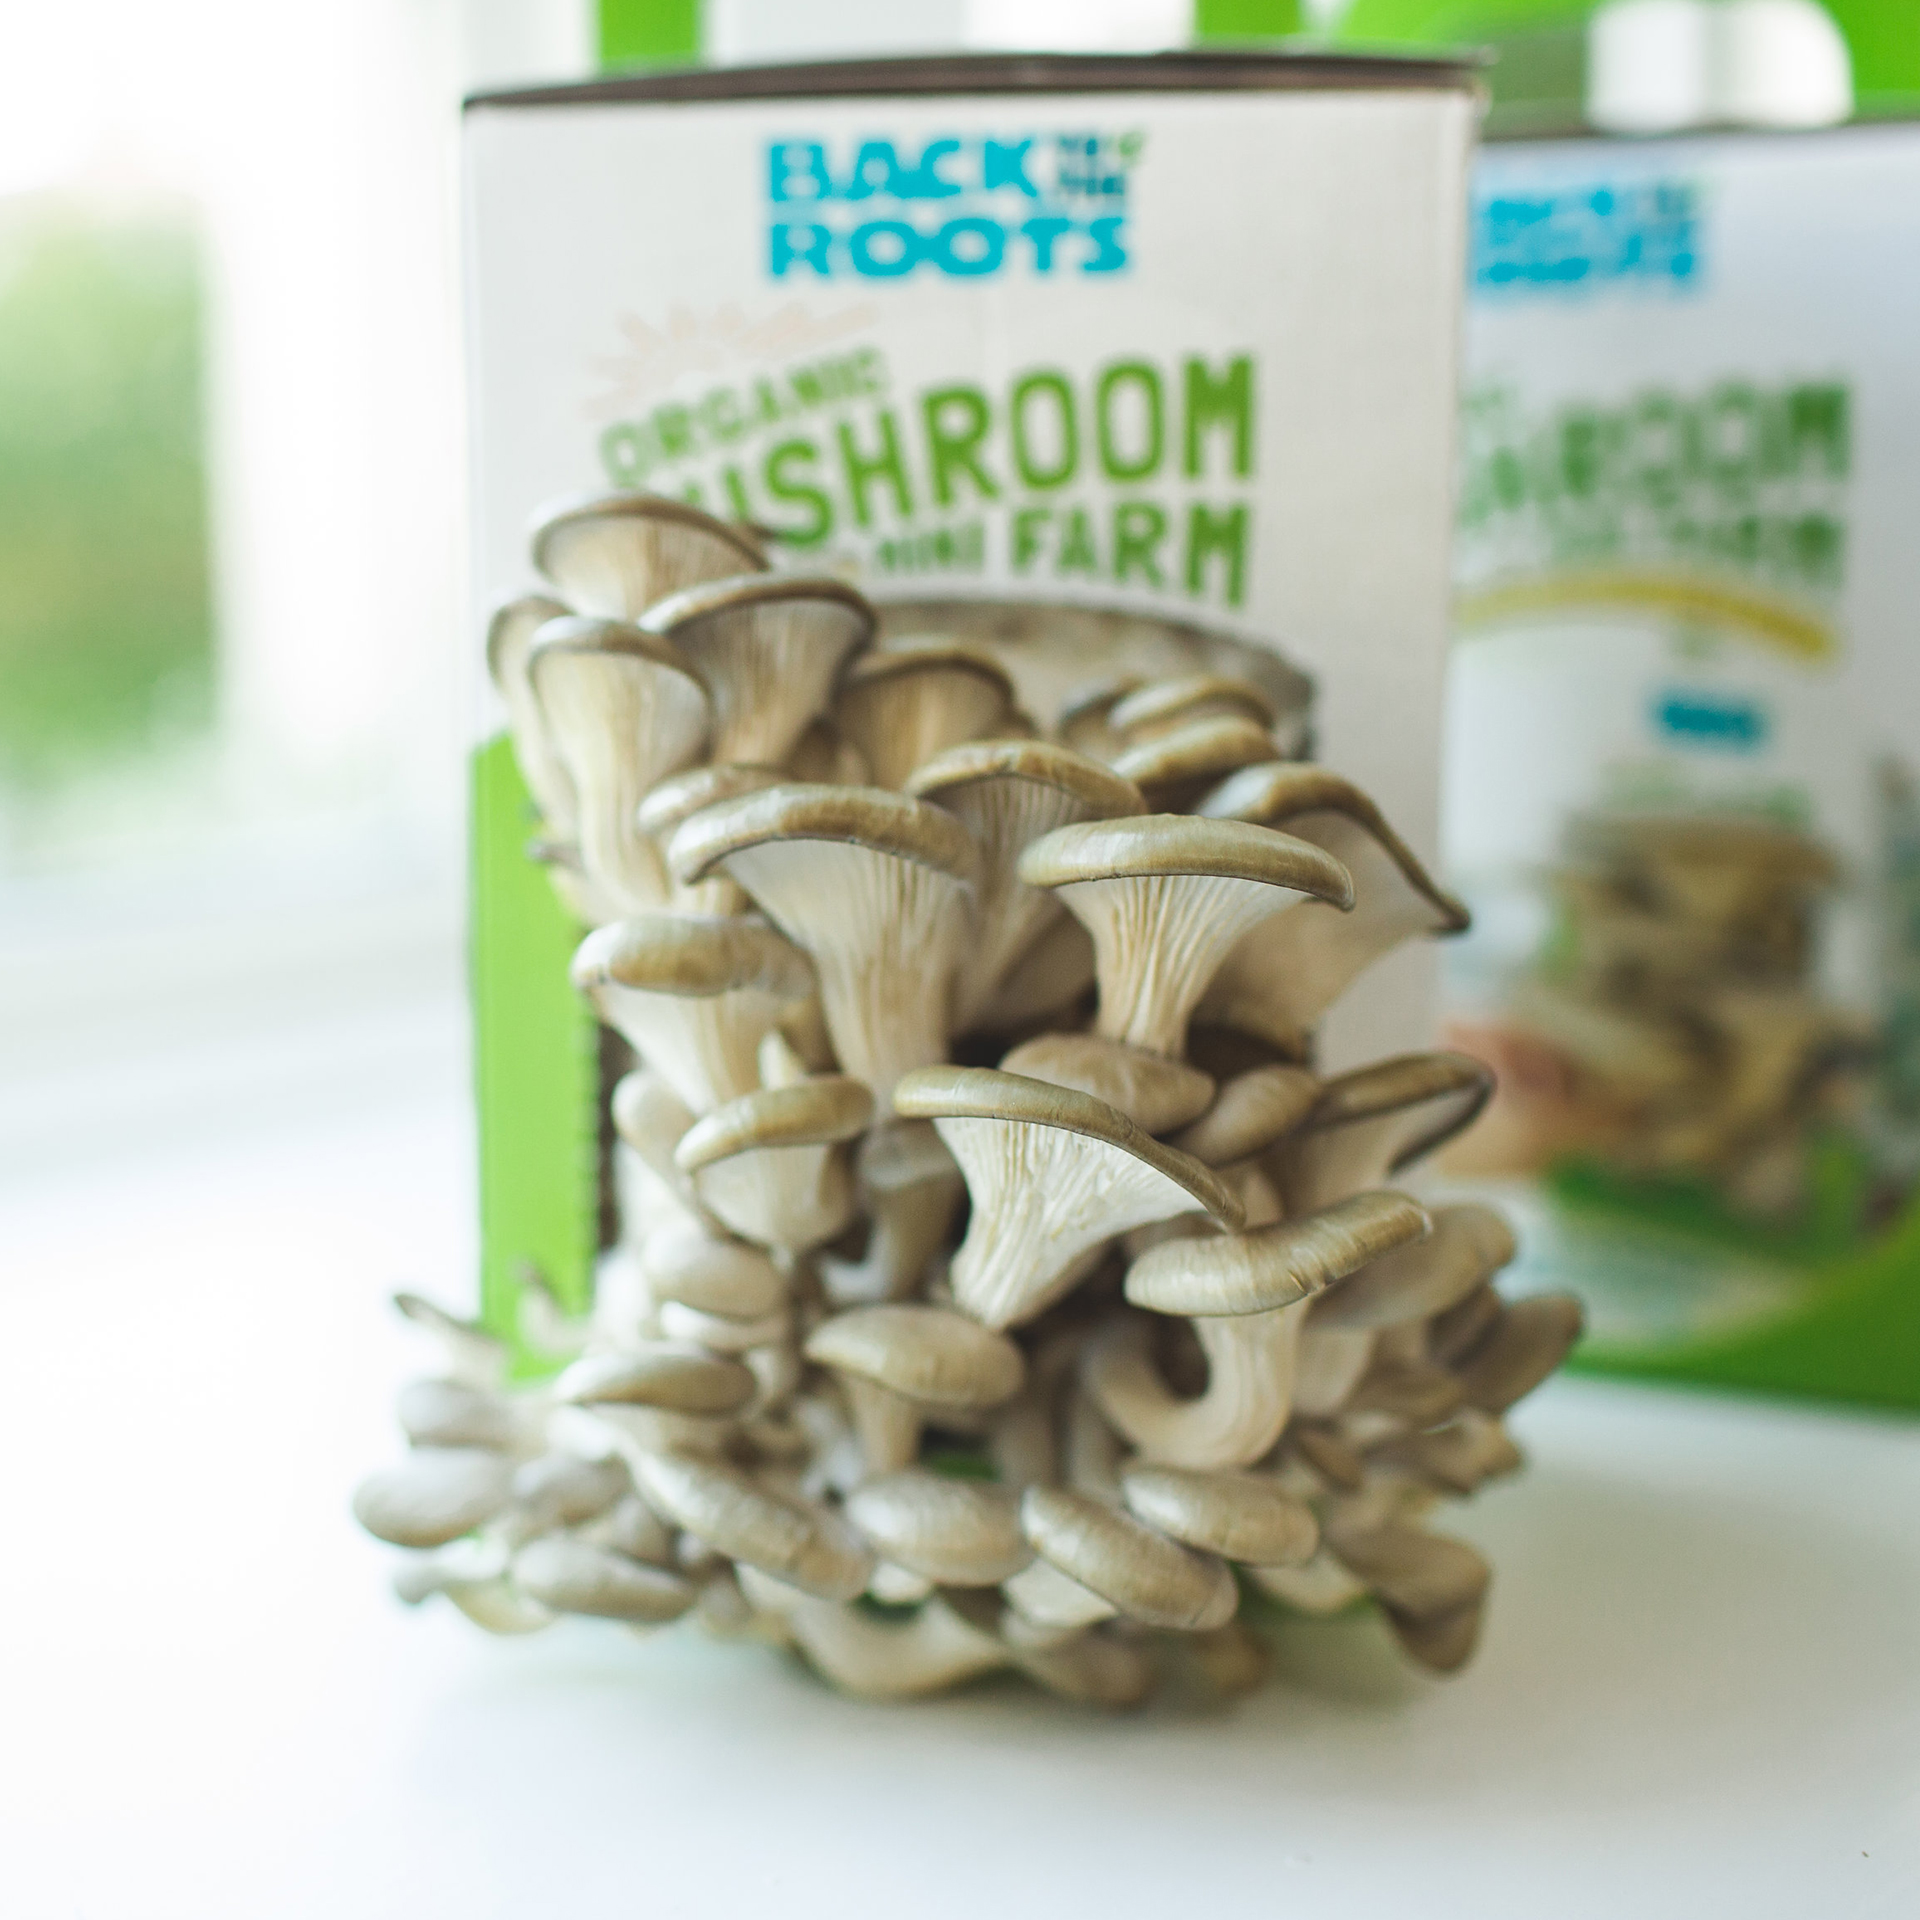 How to Grow Your Own Organic Mushrooms – A Mushroom Growing Guide